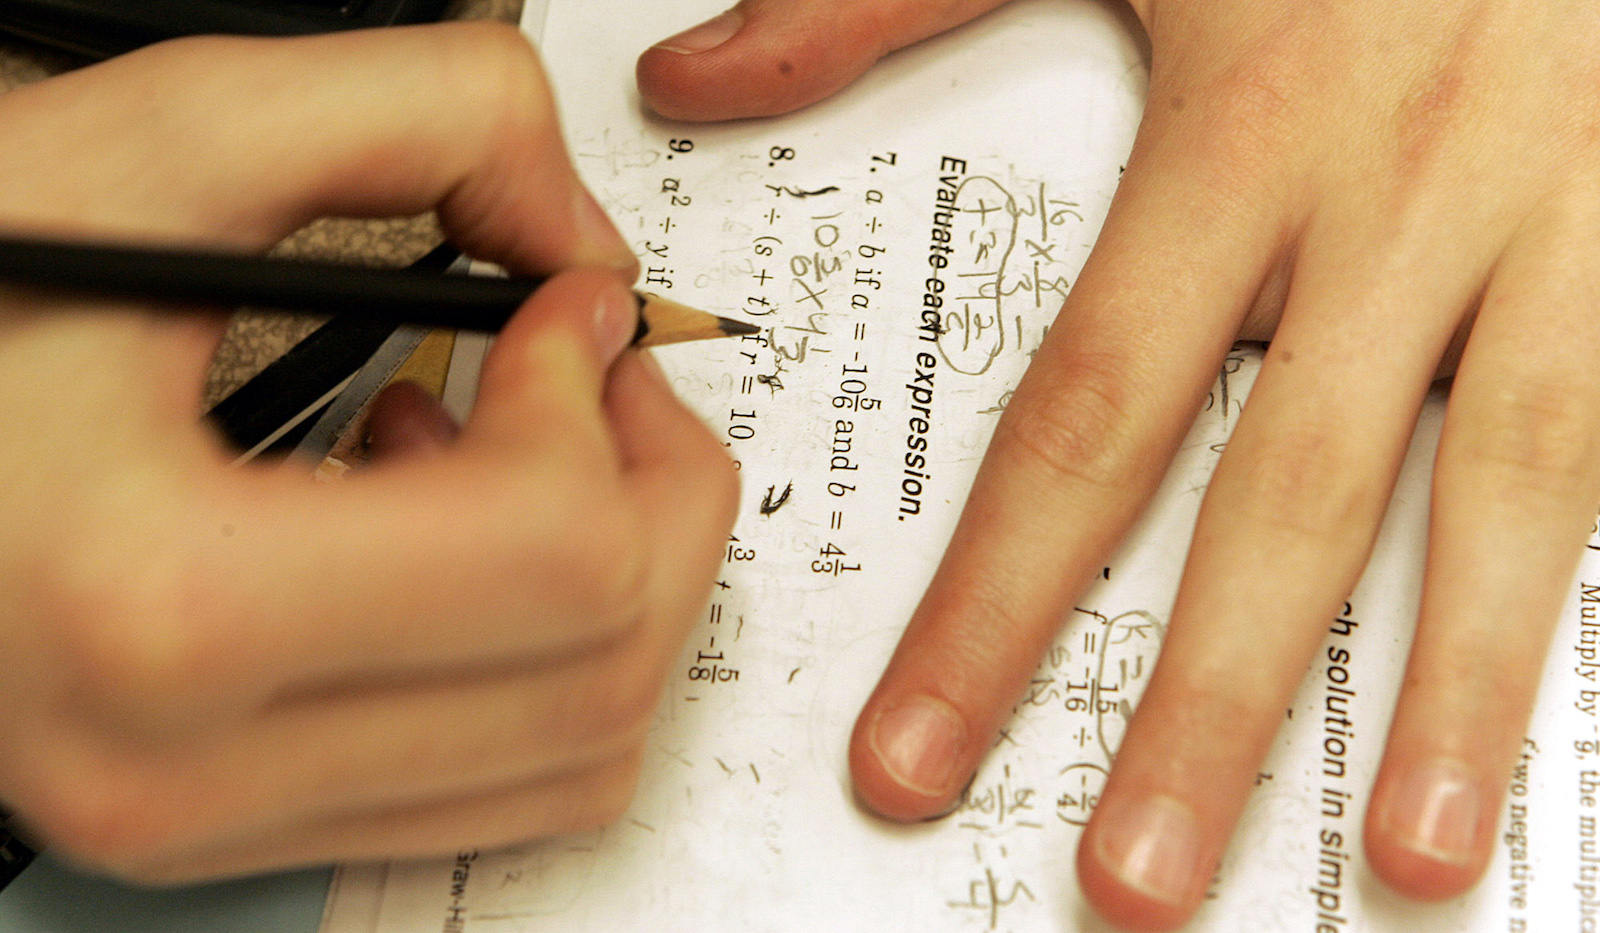 To win the International Math Olympiad, the US team trained